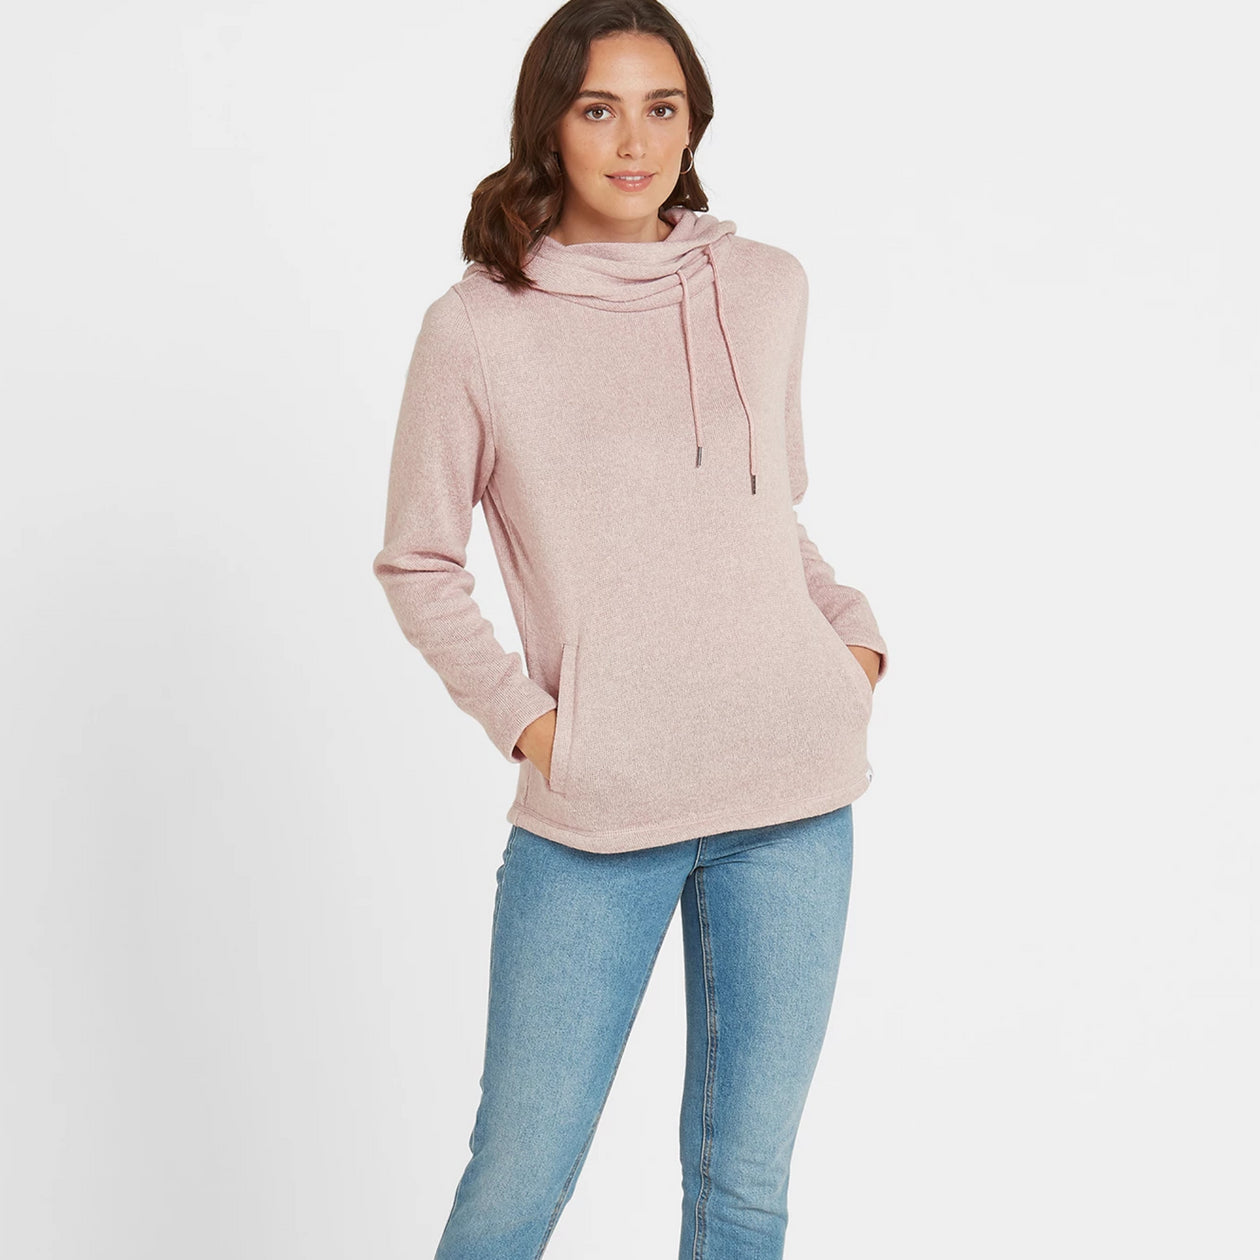 Tunstall Womens Knitlook Fleece Hood - Rose Pink Marl image 4